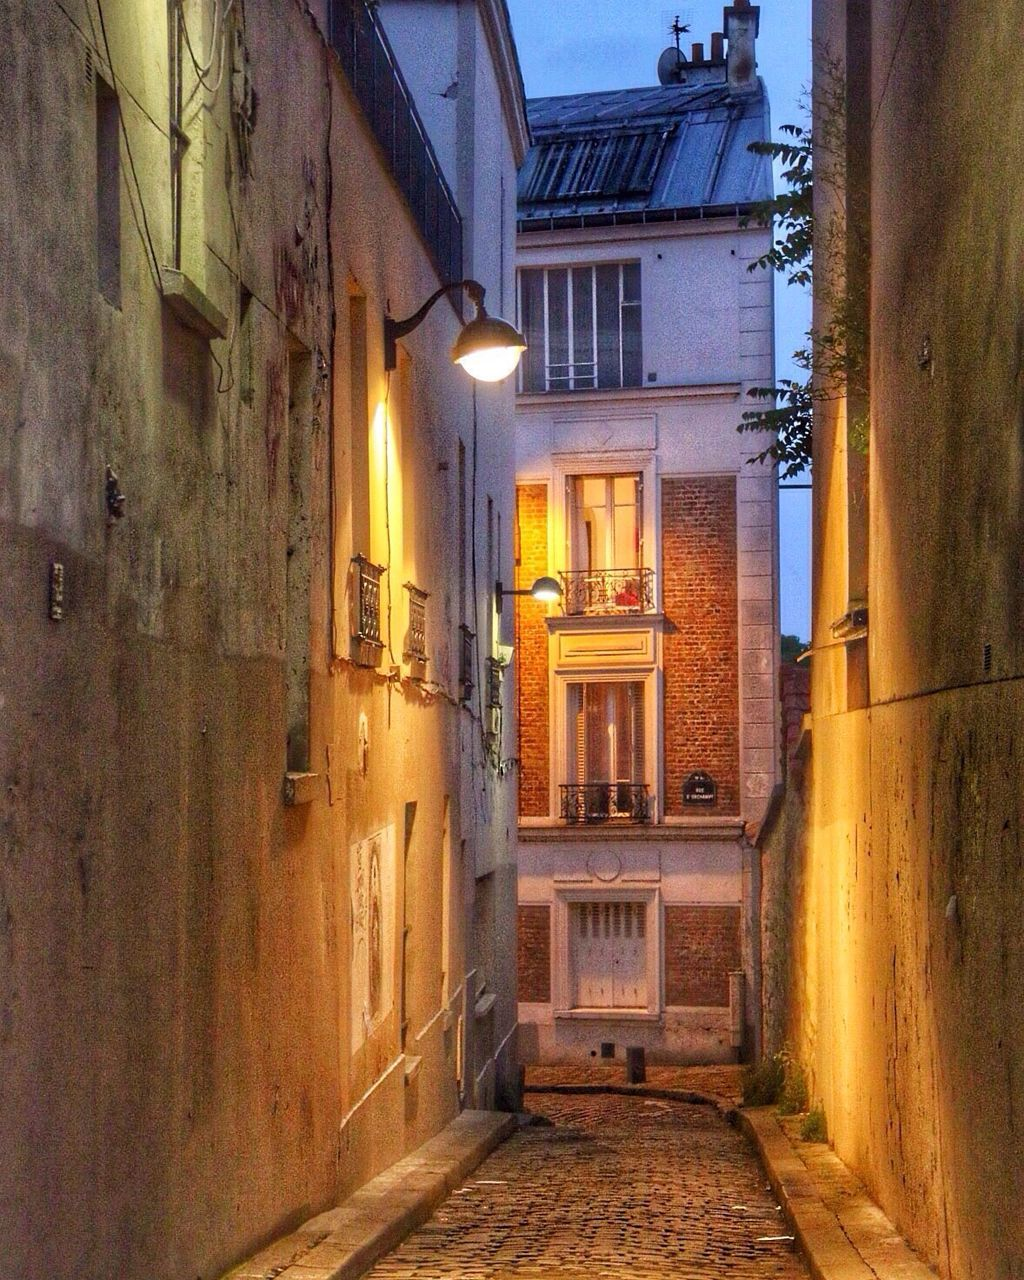 architecture, building exterior, built structure, residential building, the way forward, house, alley, no people, illuminated, window, outdoors, walkway, city, day, sky